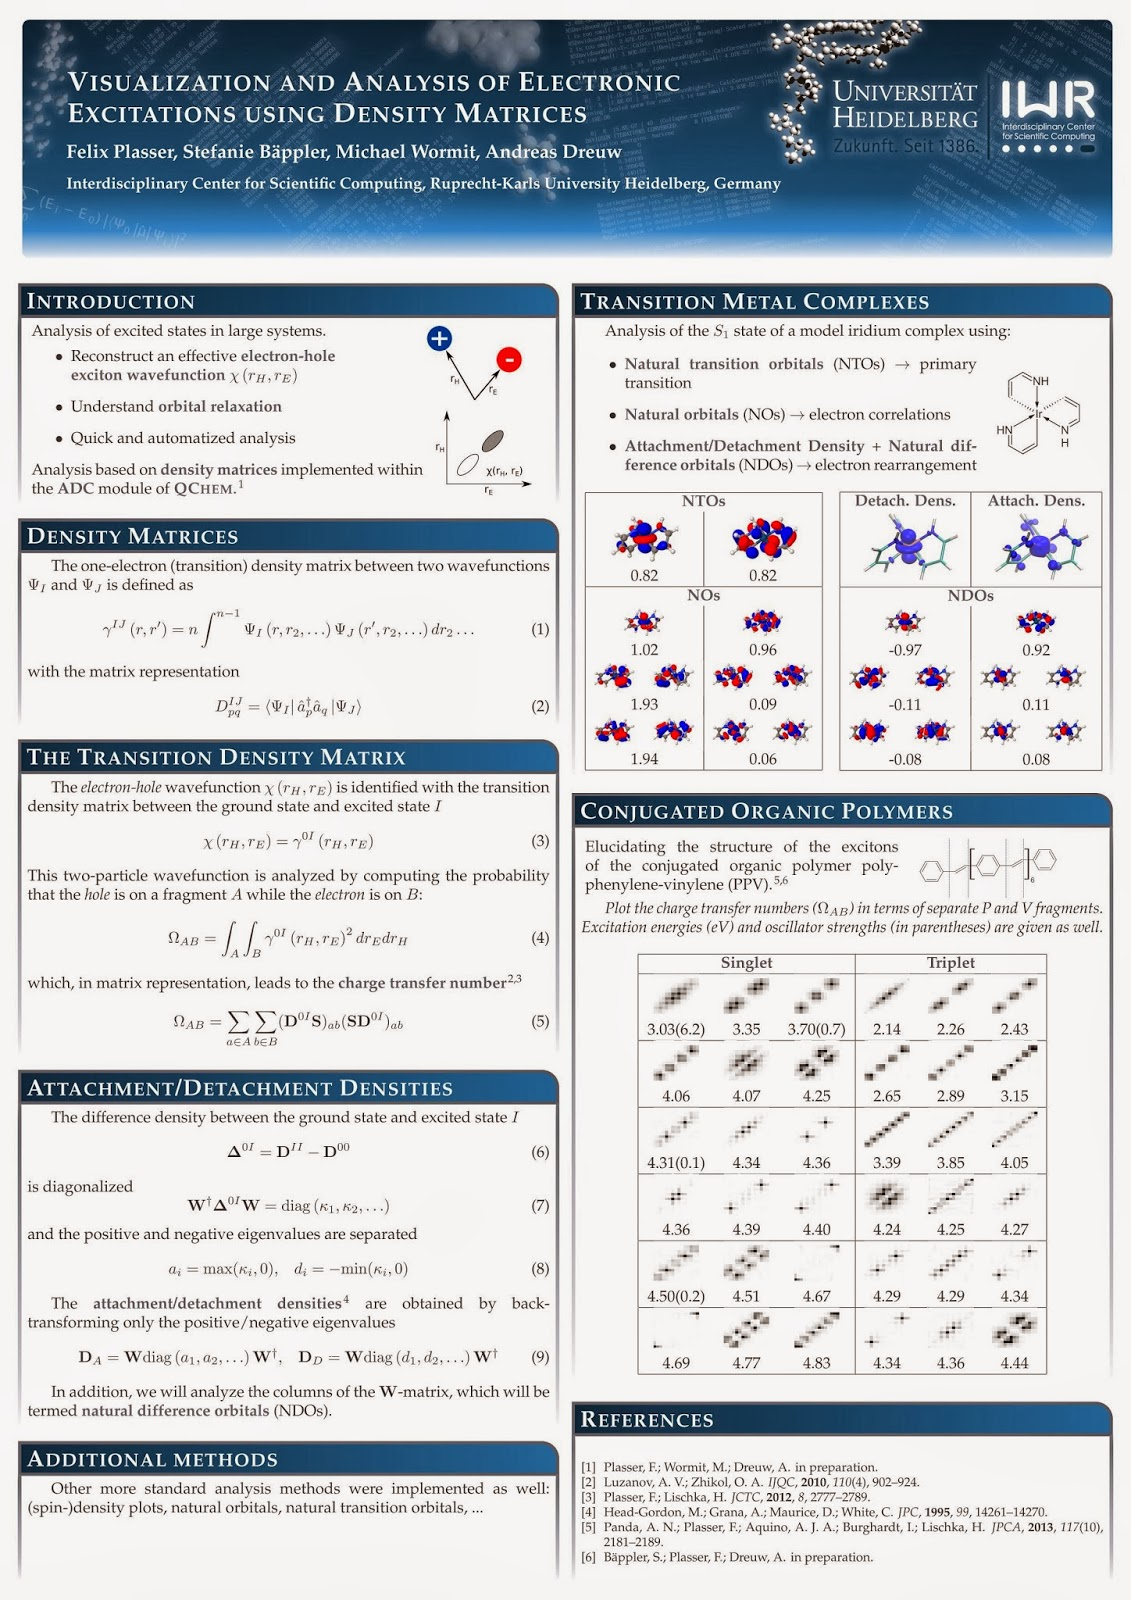 Poster design latex - Poster Design Latex Aside From Nice Looking Equations And Well Arranged Graphics An Advantage Of